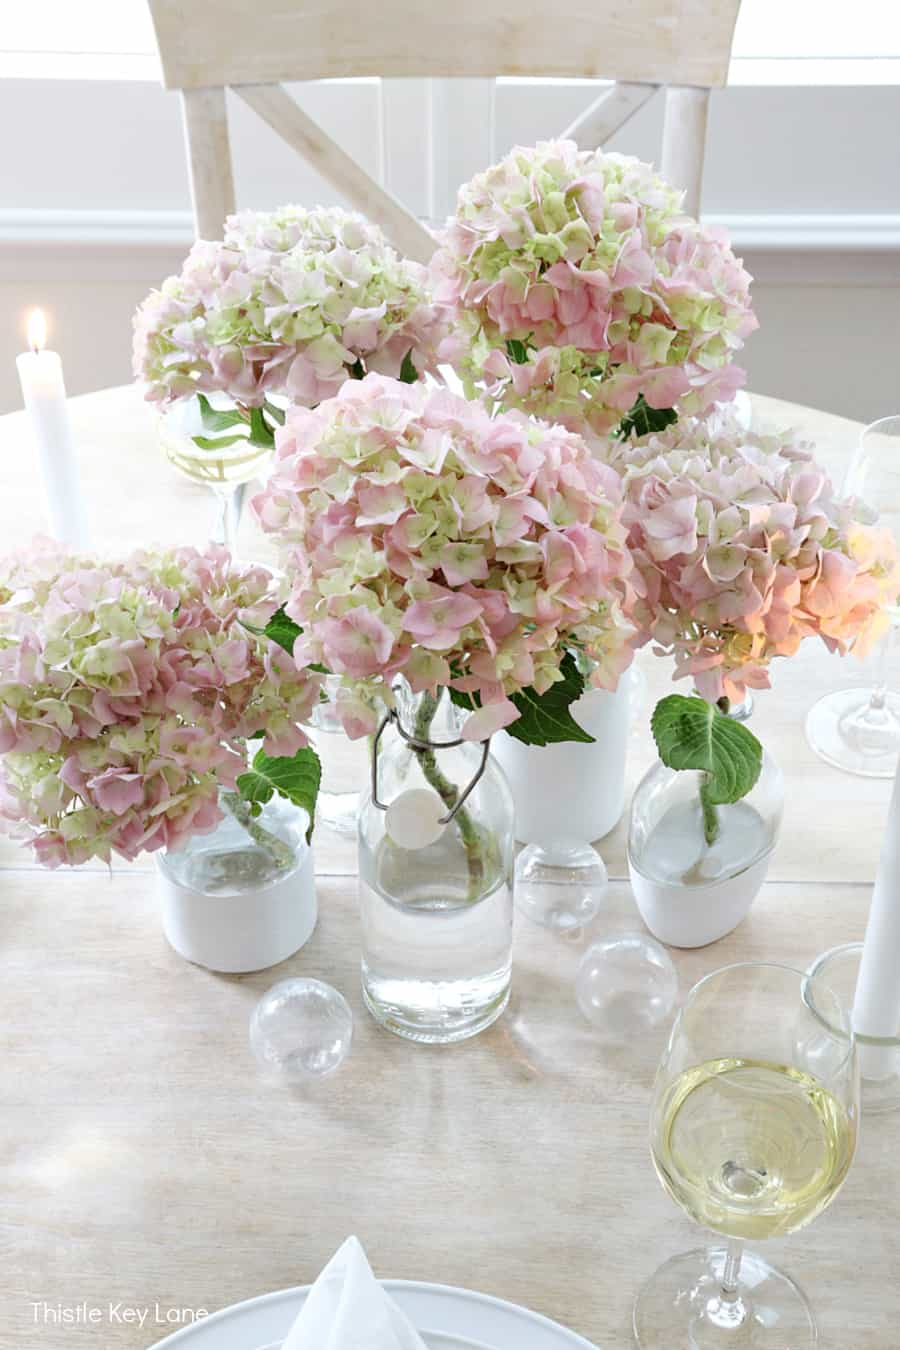 Overview of pink and green hydrangeas in the center of the table. Summer Tablescape With Glass Bottle Vases.